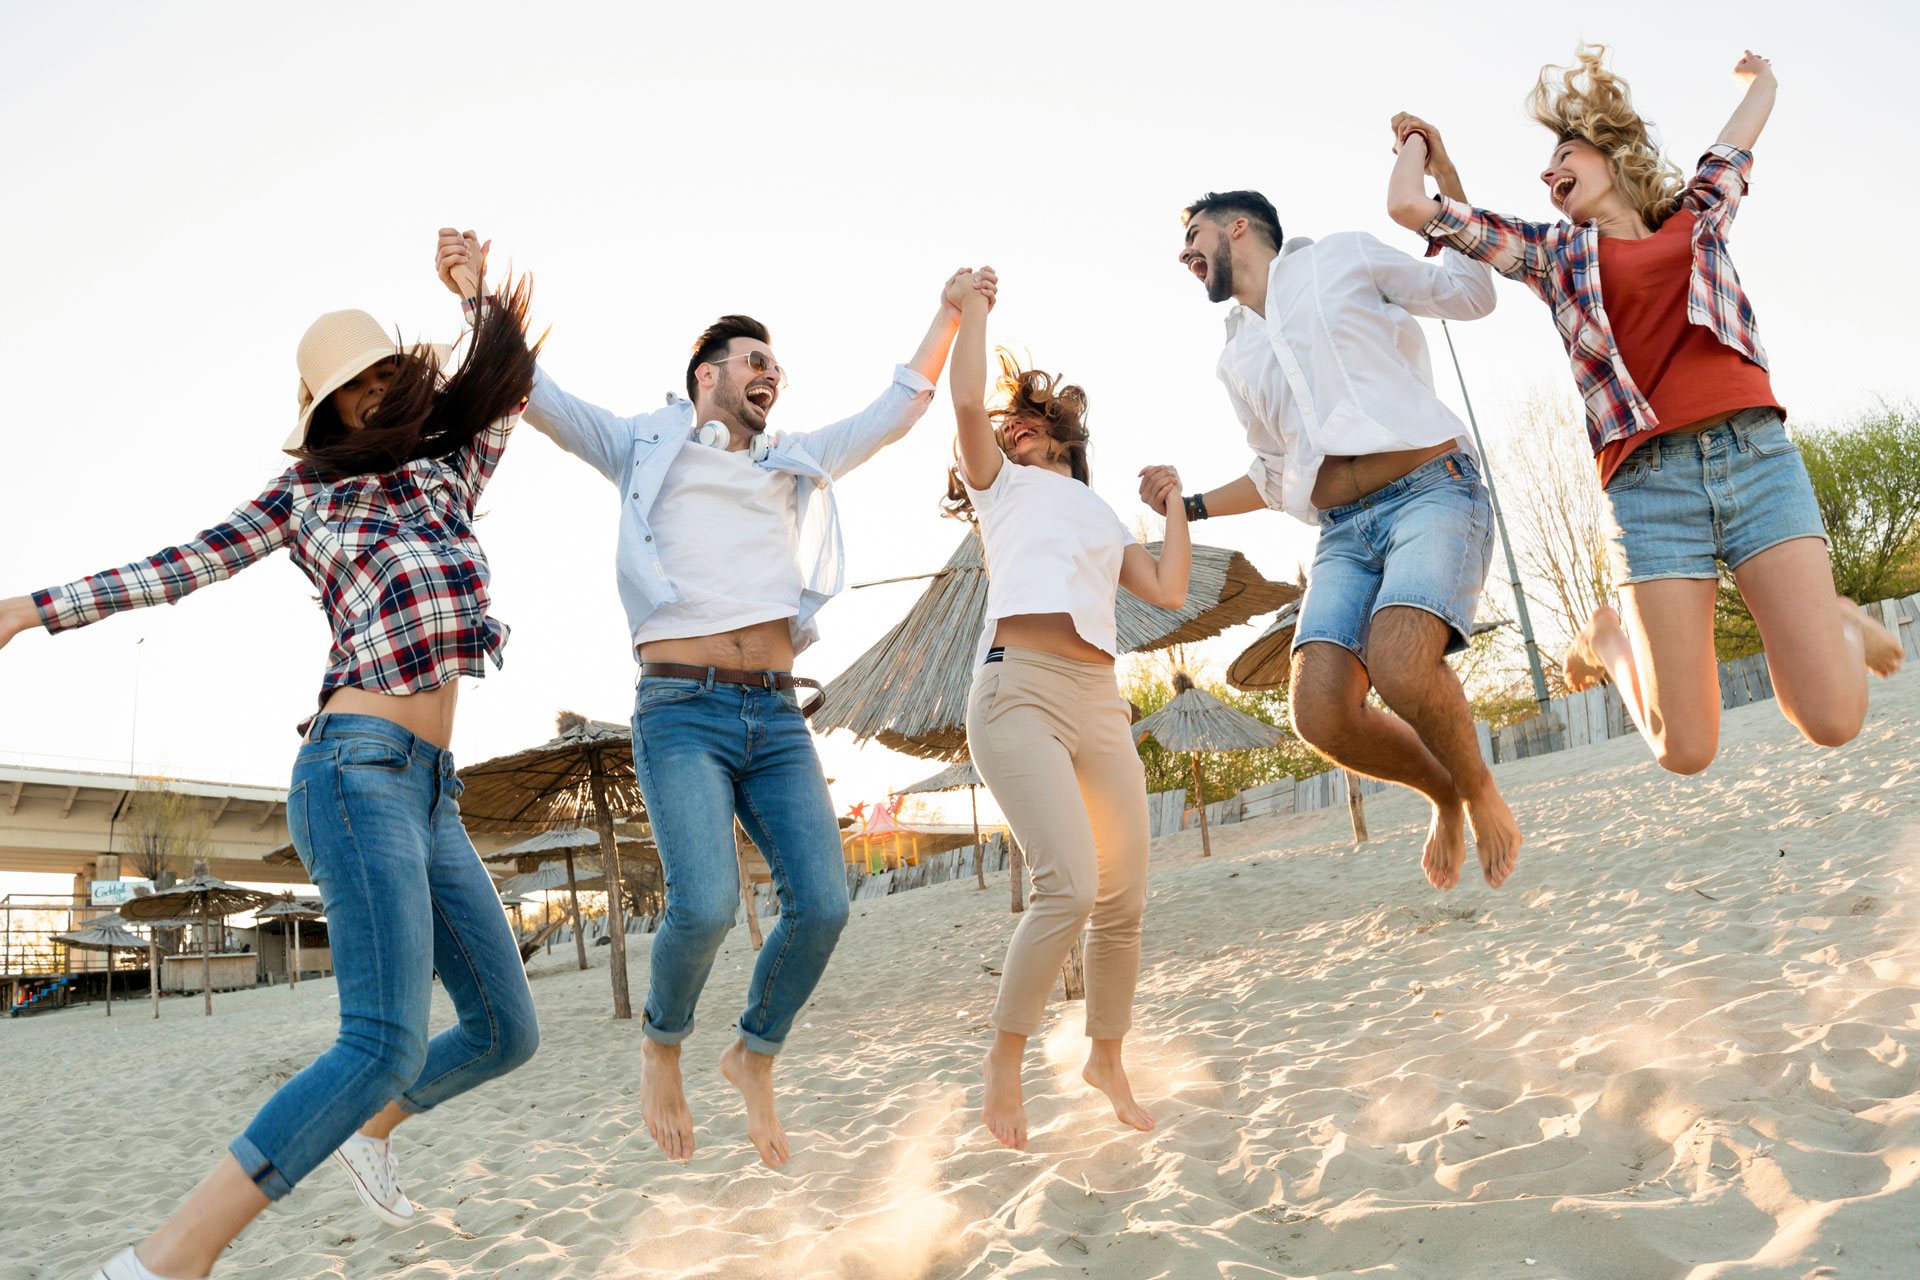 group-of-happy-friends-partying-on-beach-PZDBSTH